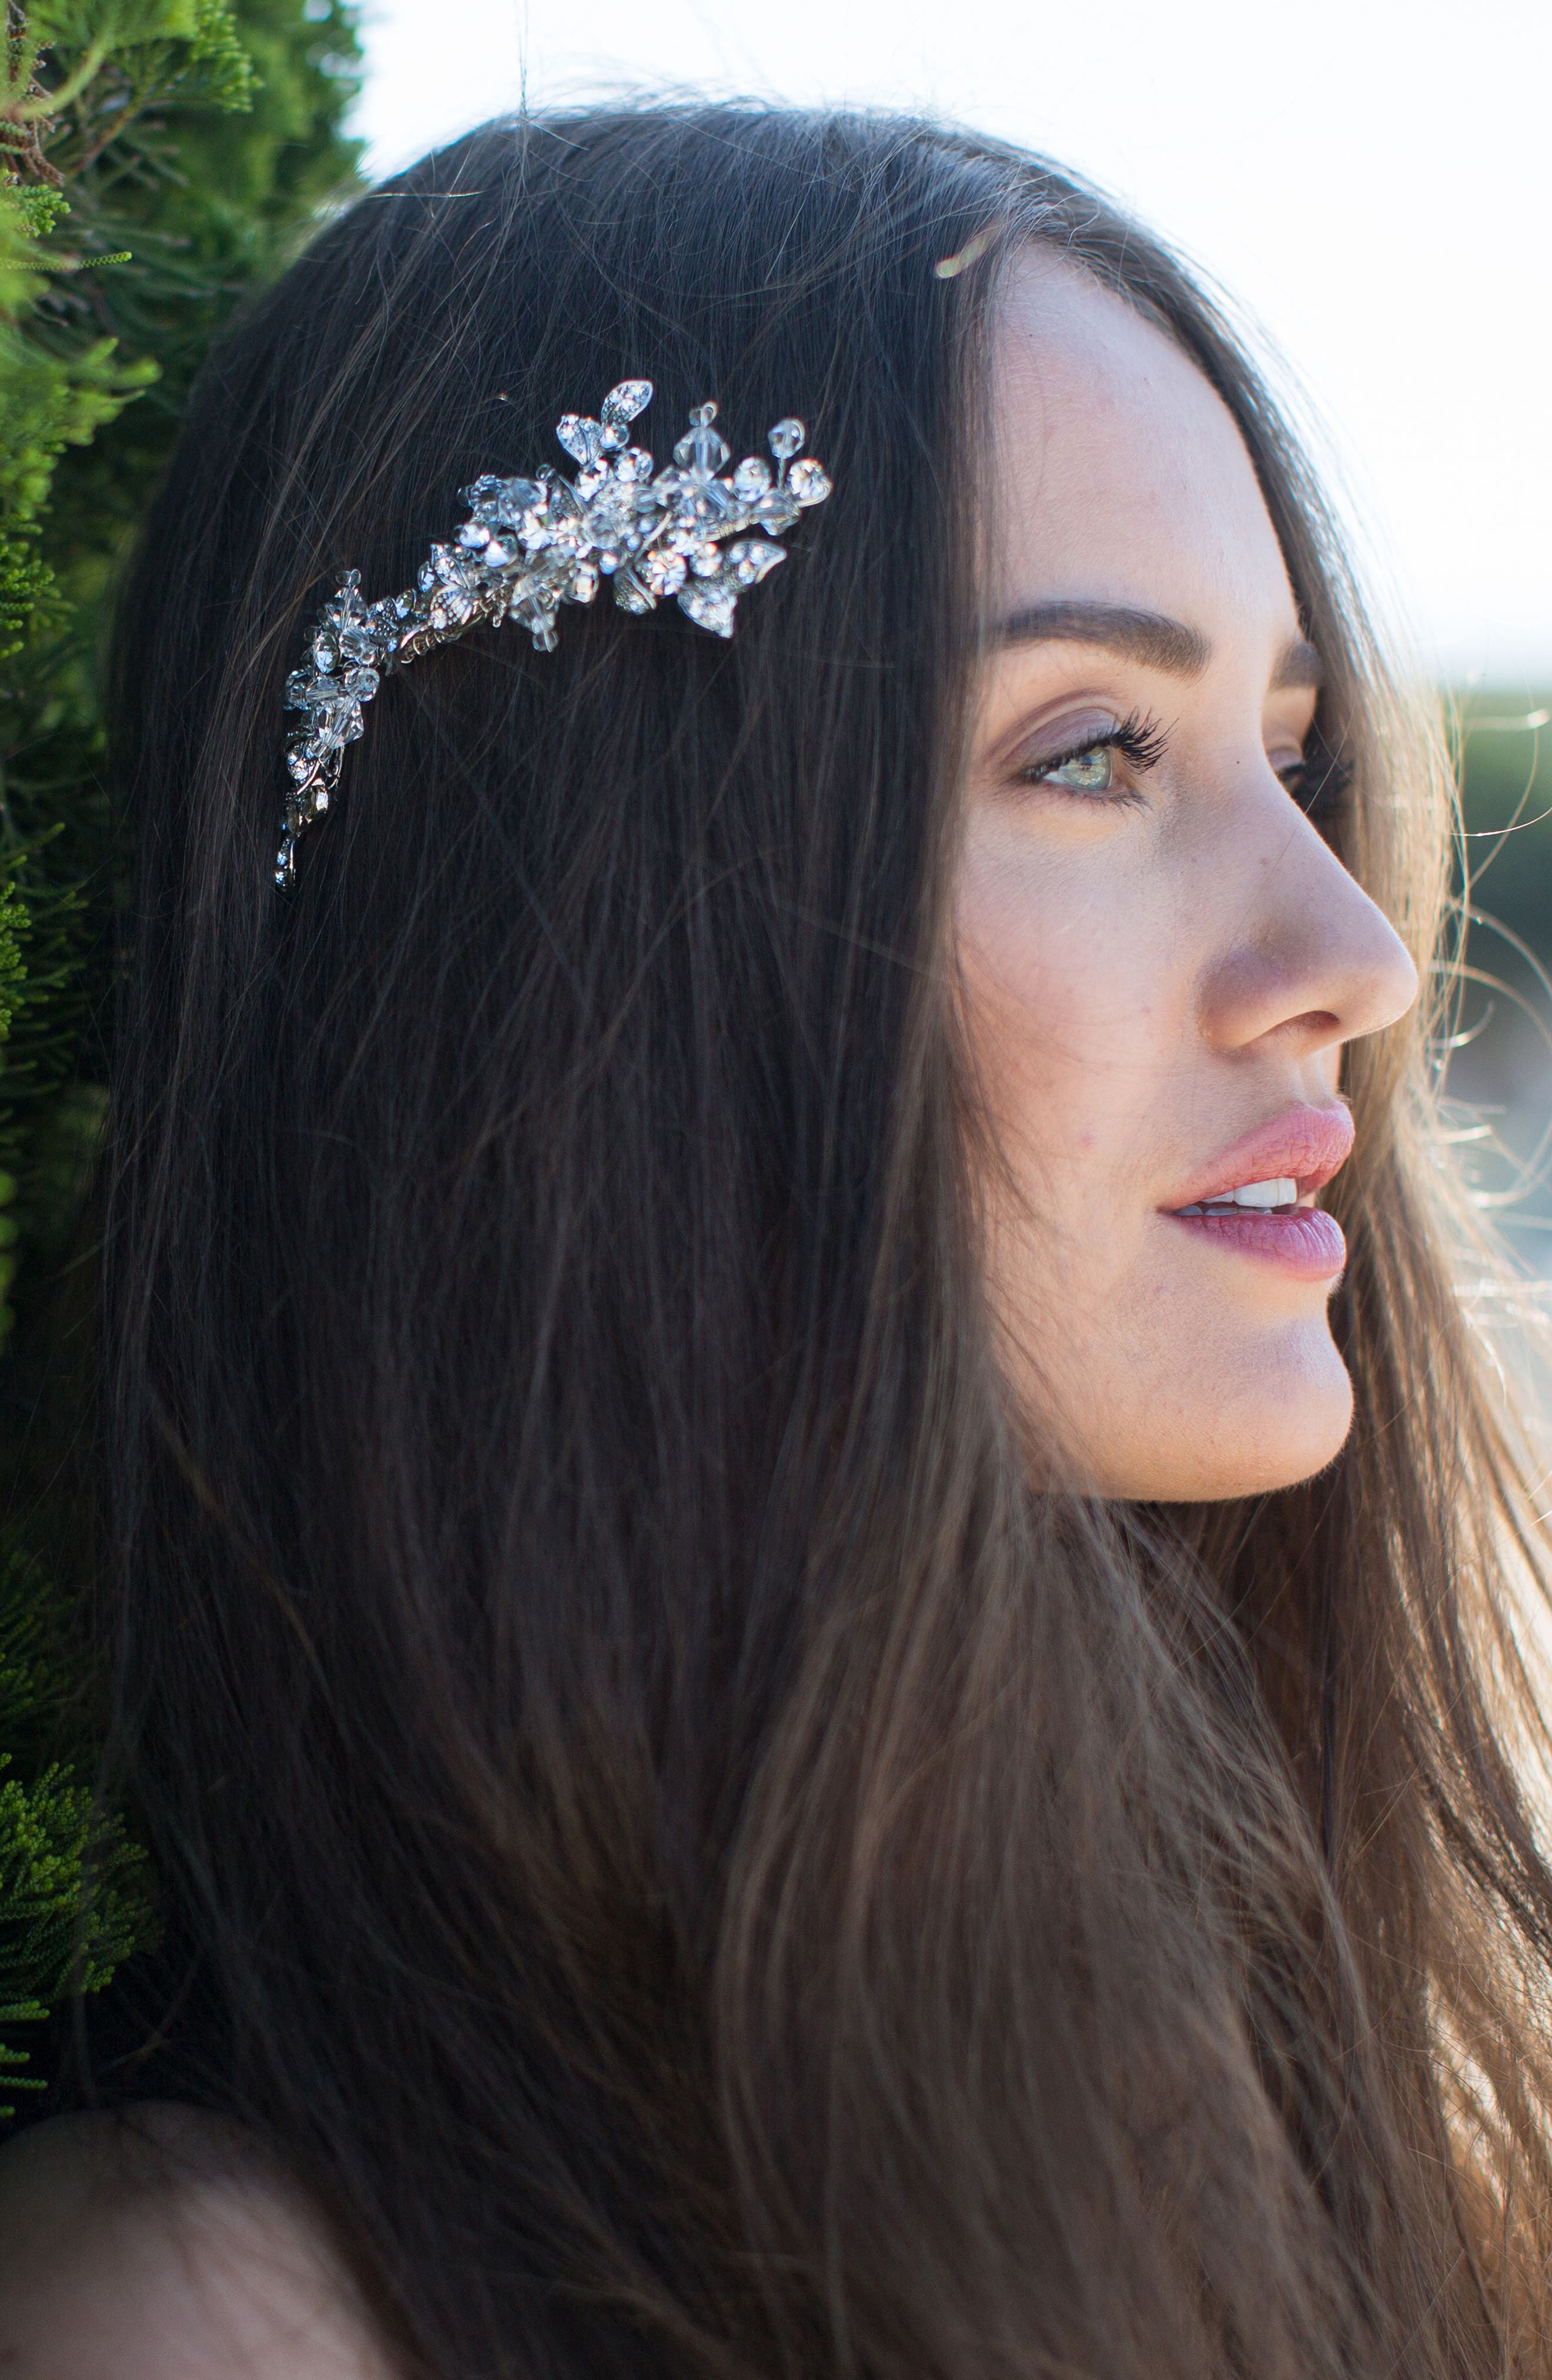 Alternate Image 1 Selected - Brides & Hairpins Olivia Jeweled Hair Clip